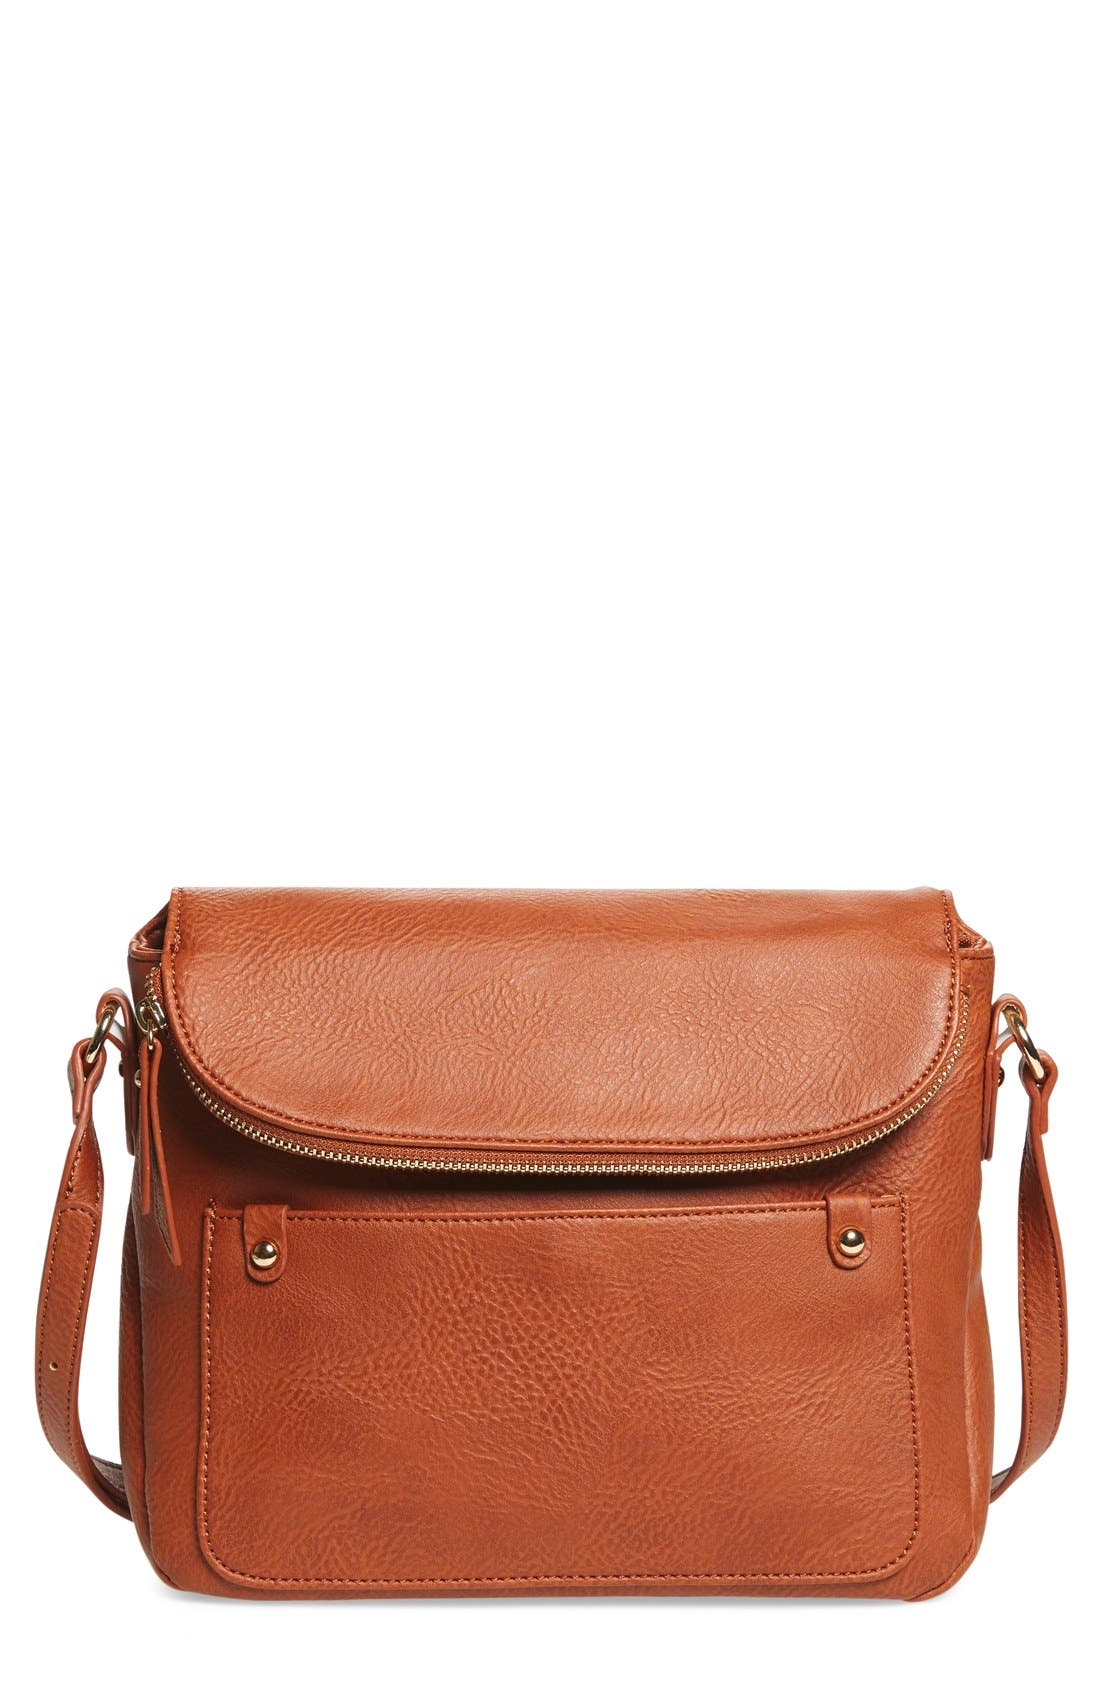 Main Image - BP. Zip Flap Faux Leather Crossbody Bag